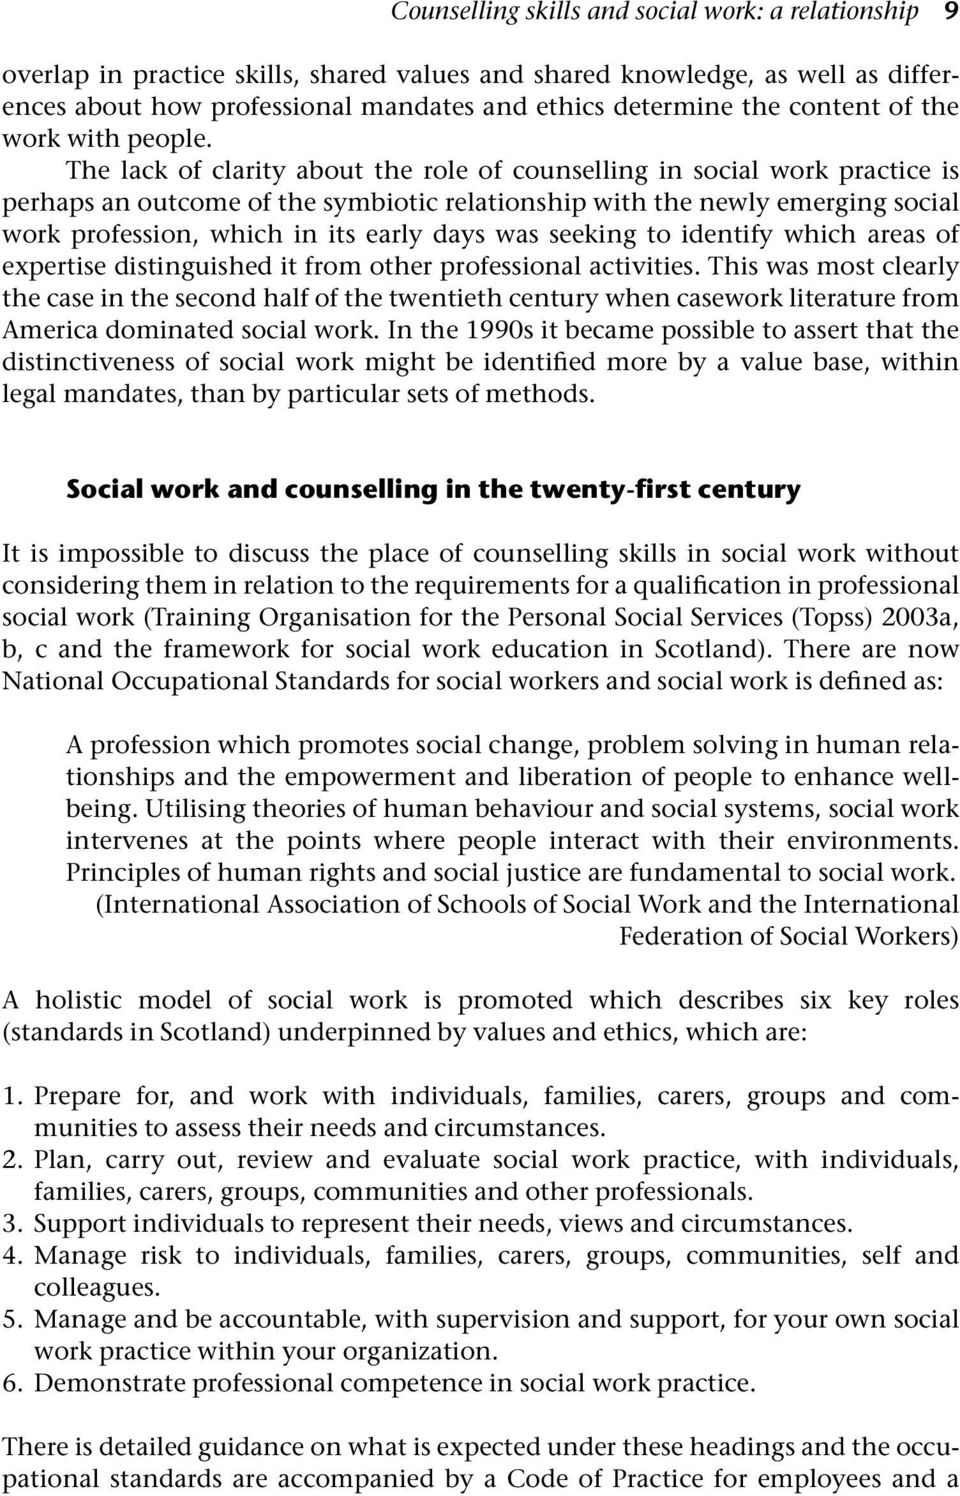 The lack of clarity about the role of counselling in social work practice is perhaps an outcome of the symbiotic relationship with the newly emerging social work profession, which in its early days